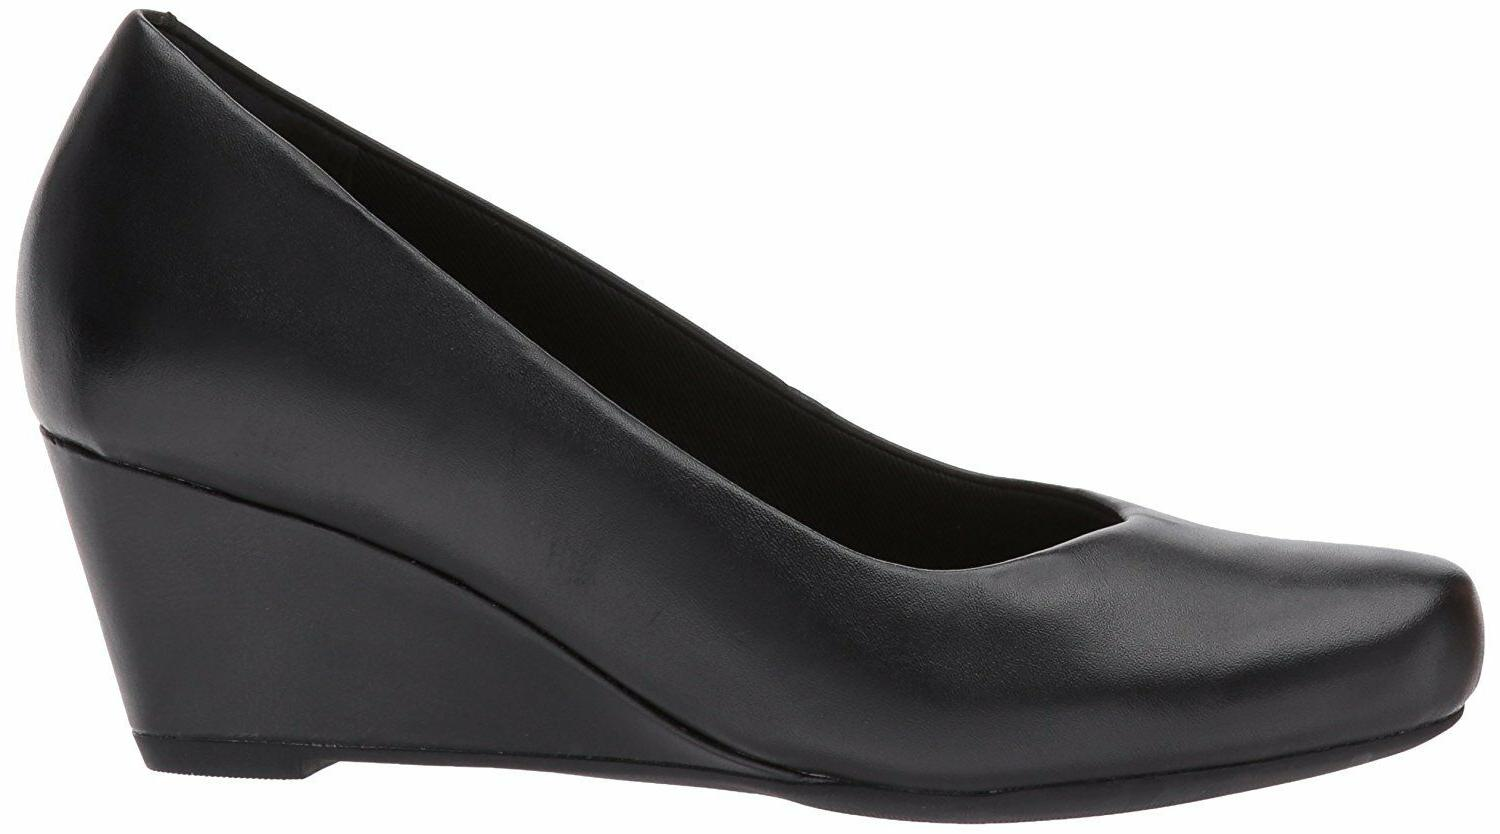 Women's Shoes Clarks Tulip Closed Wedge Pump 30117